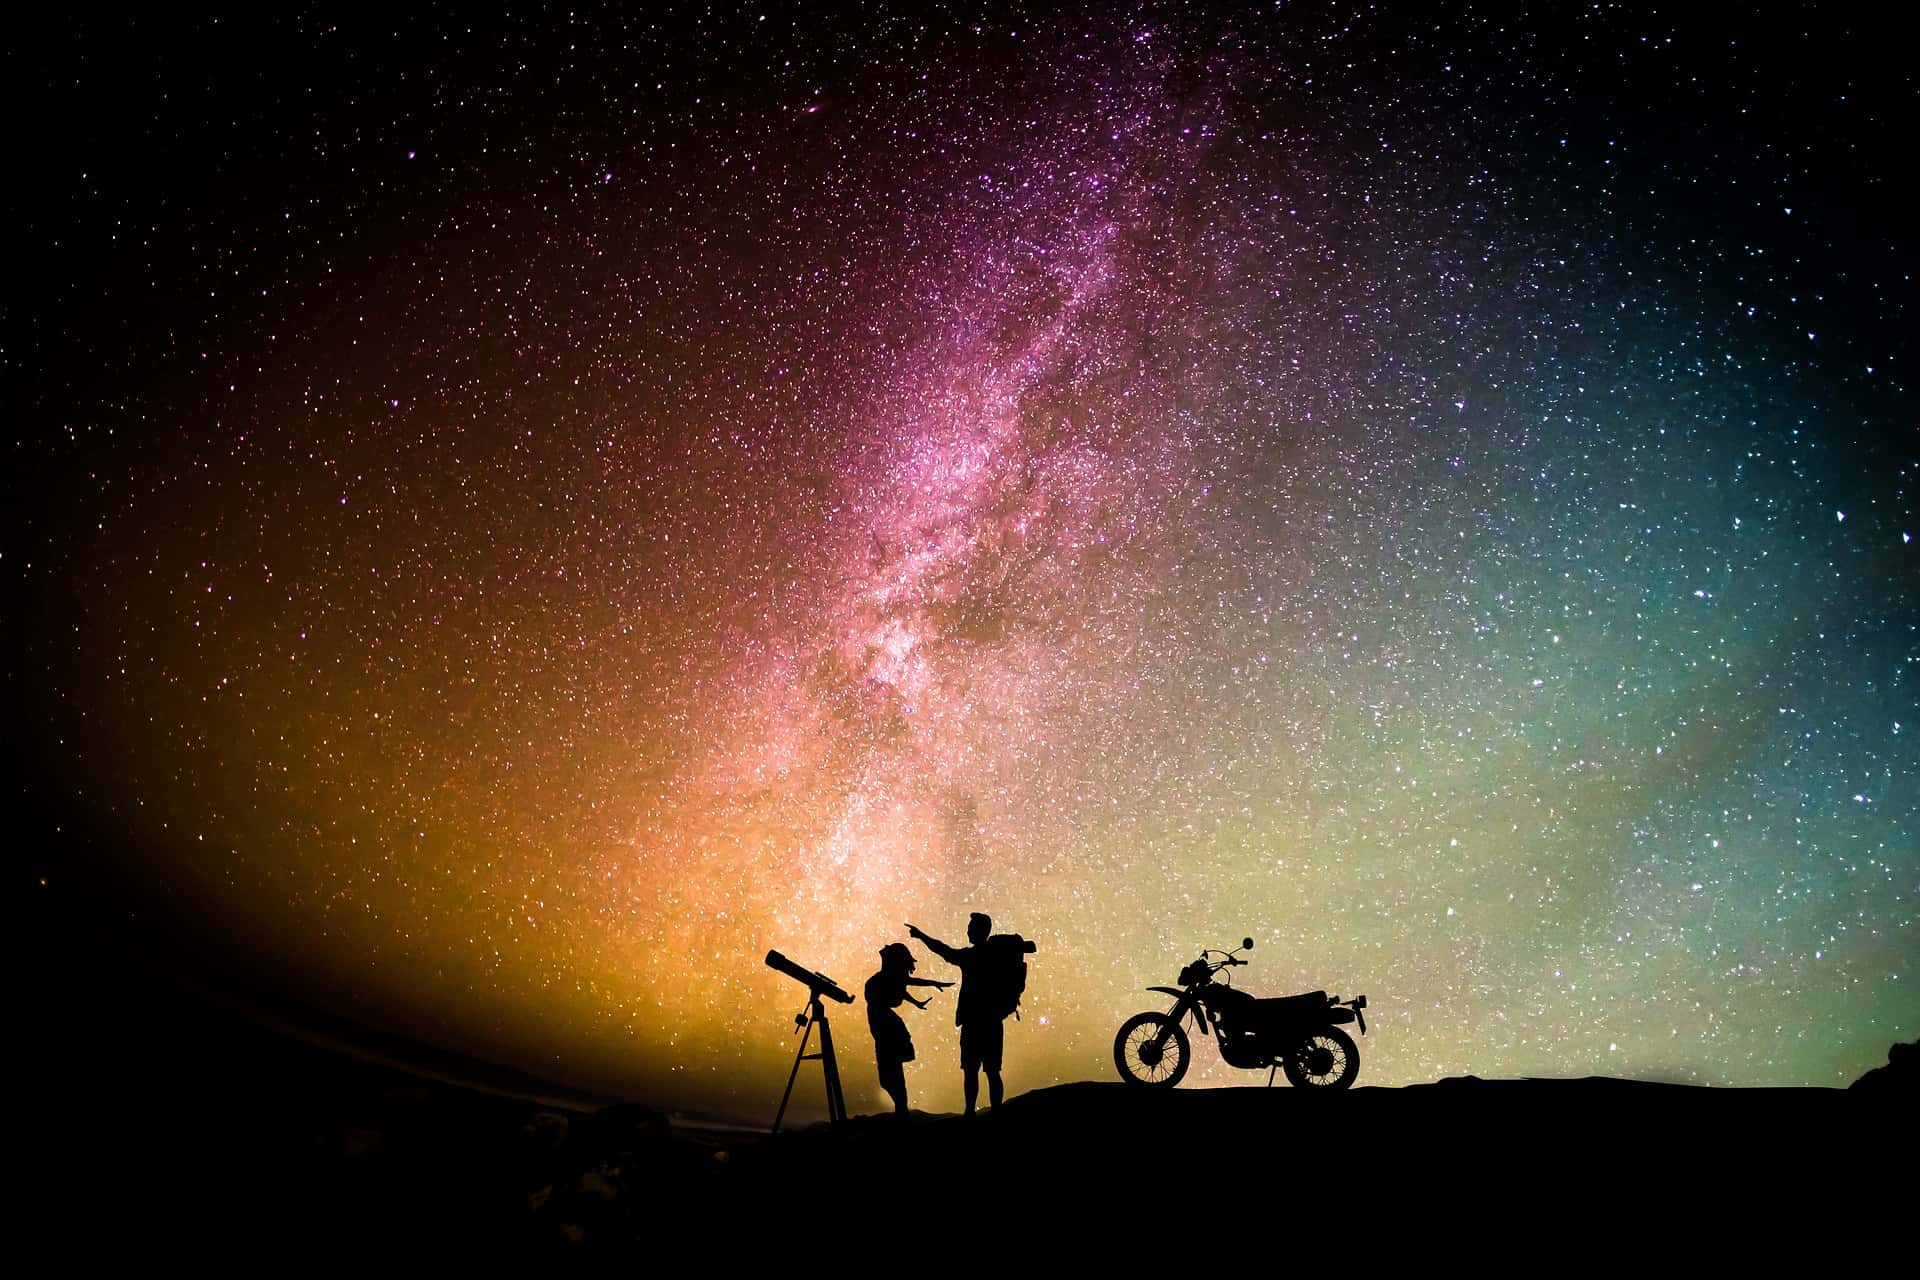 using a dobsonian to see the galaxy